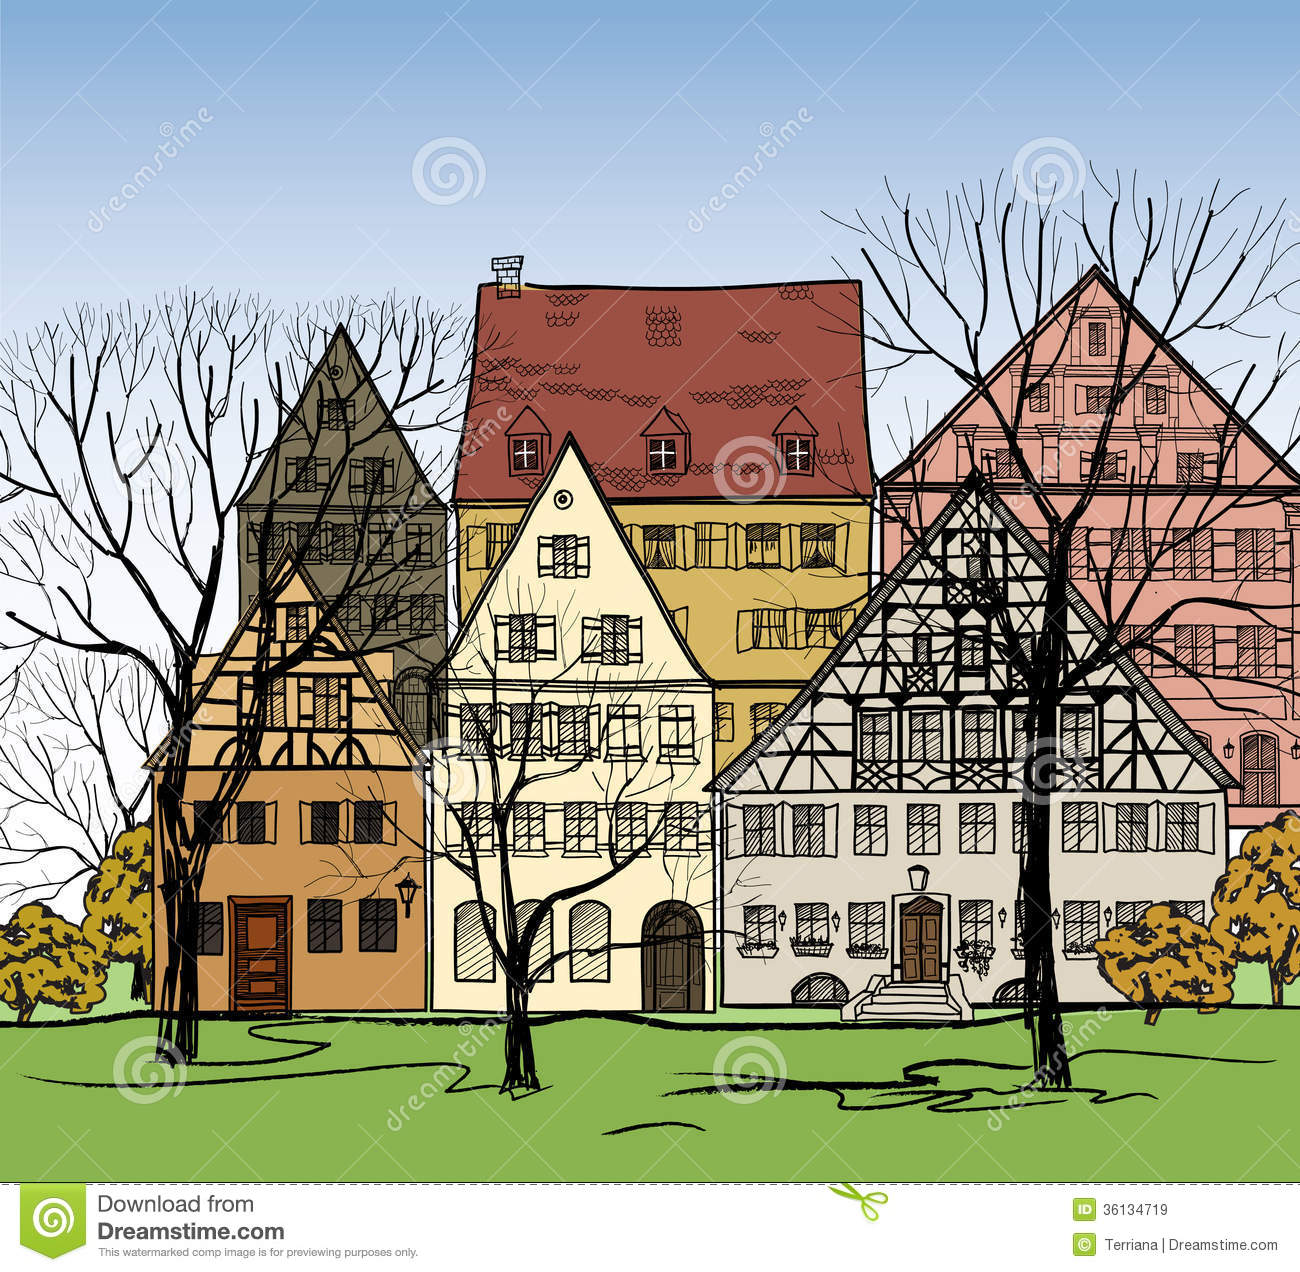 Desktop Wallpaper European Cities: Houses Background. European Cityscape. Cosy Street